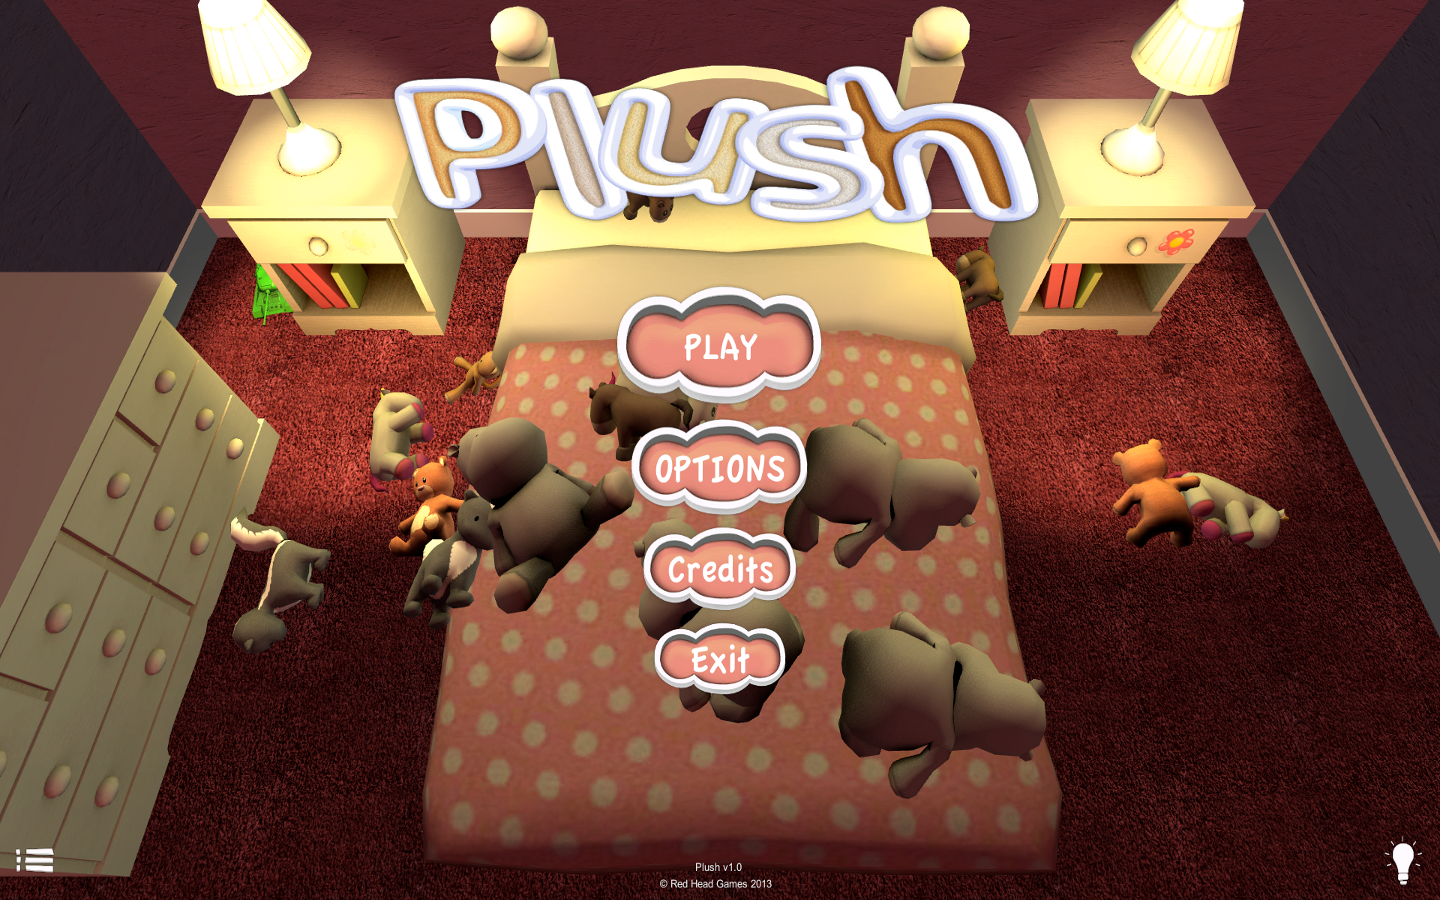 Puzzle Game Plush – Interview with its Creator